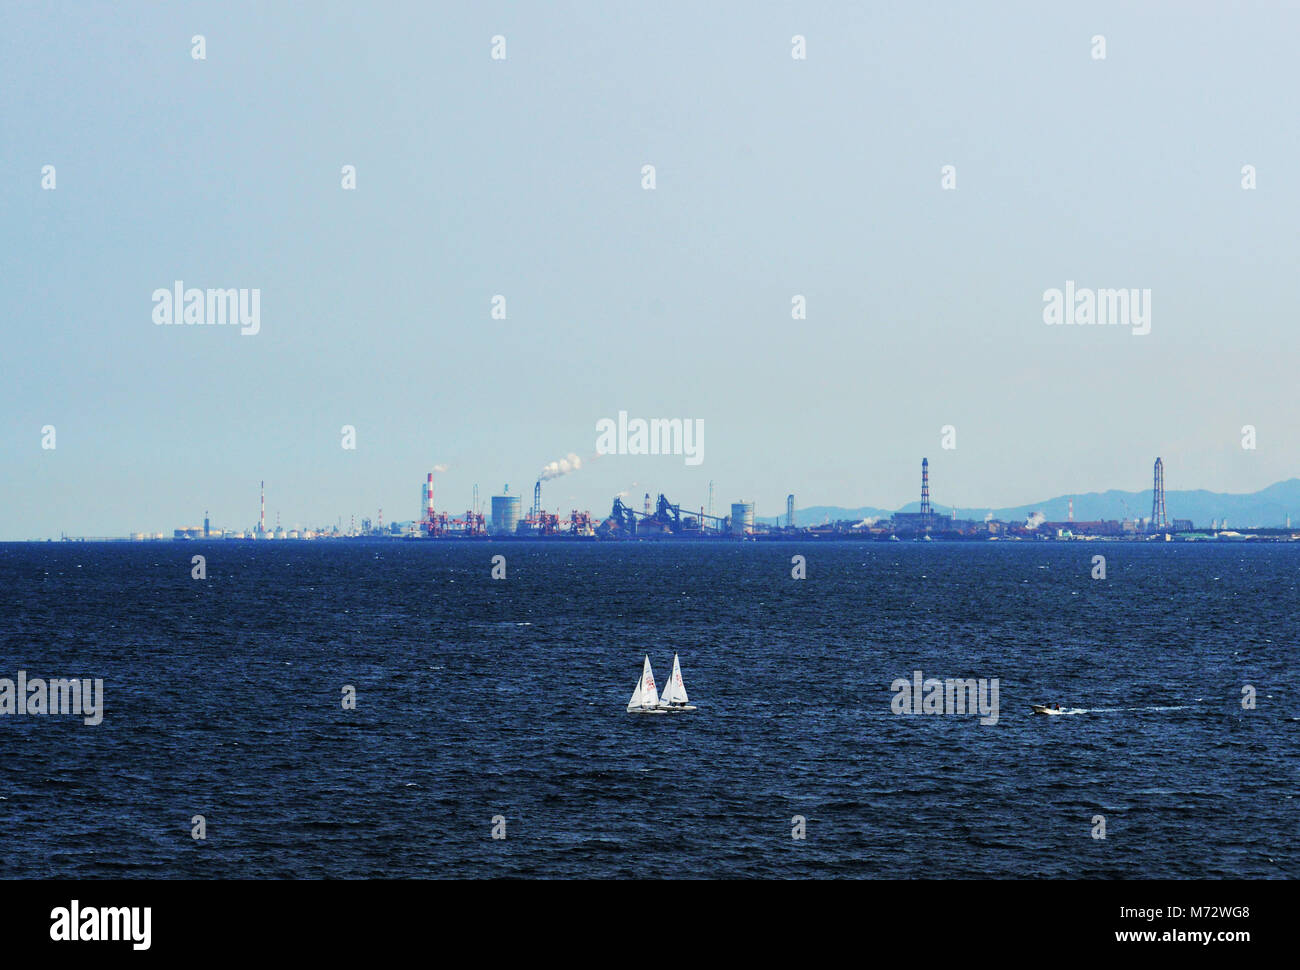 Sailboats sailing in Beppu bay. The Oita port in the background. - Stock Image